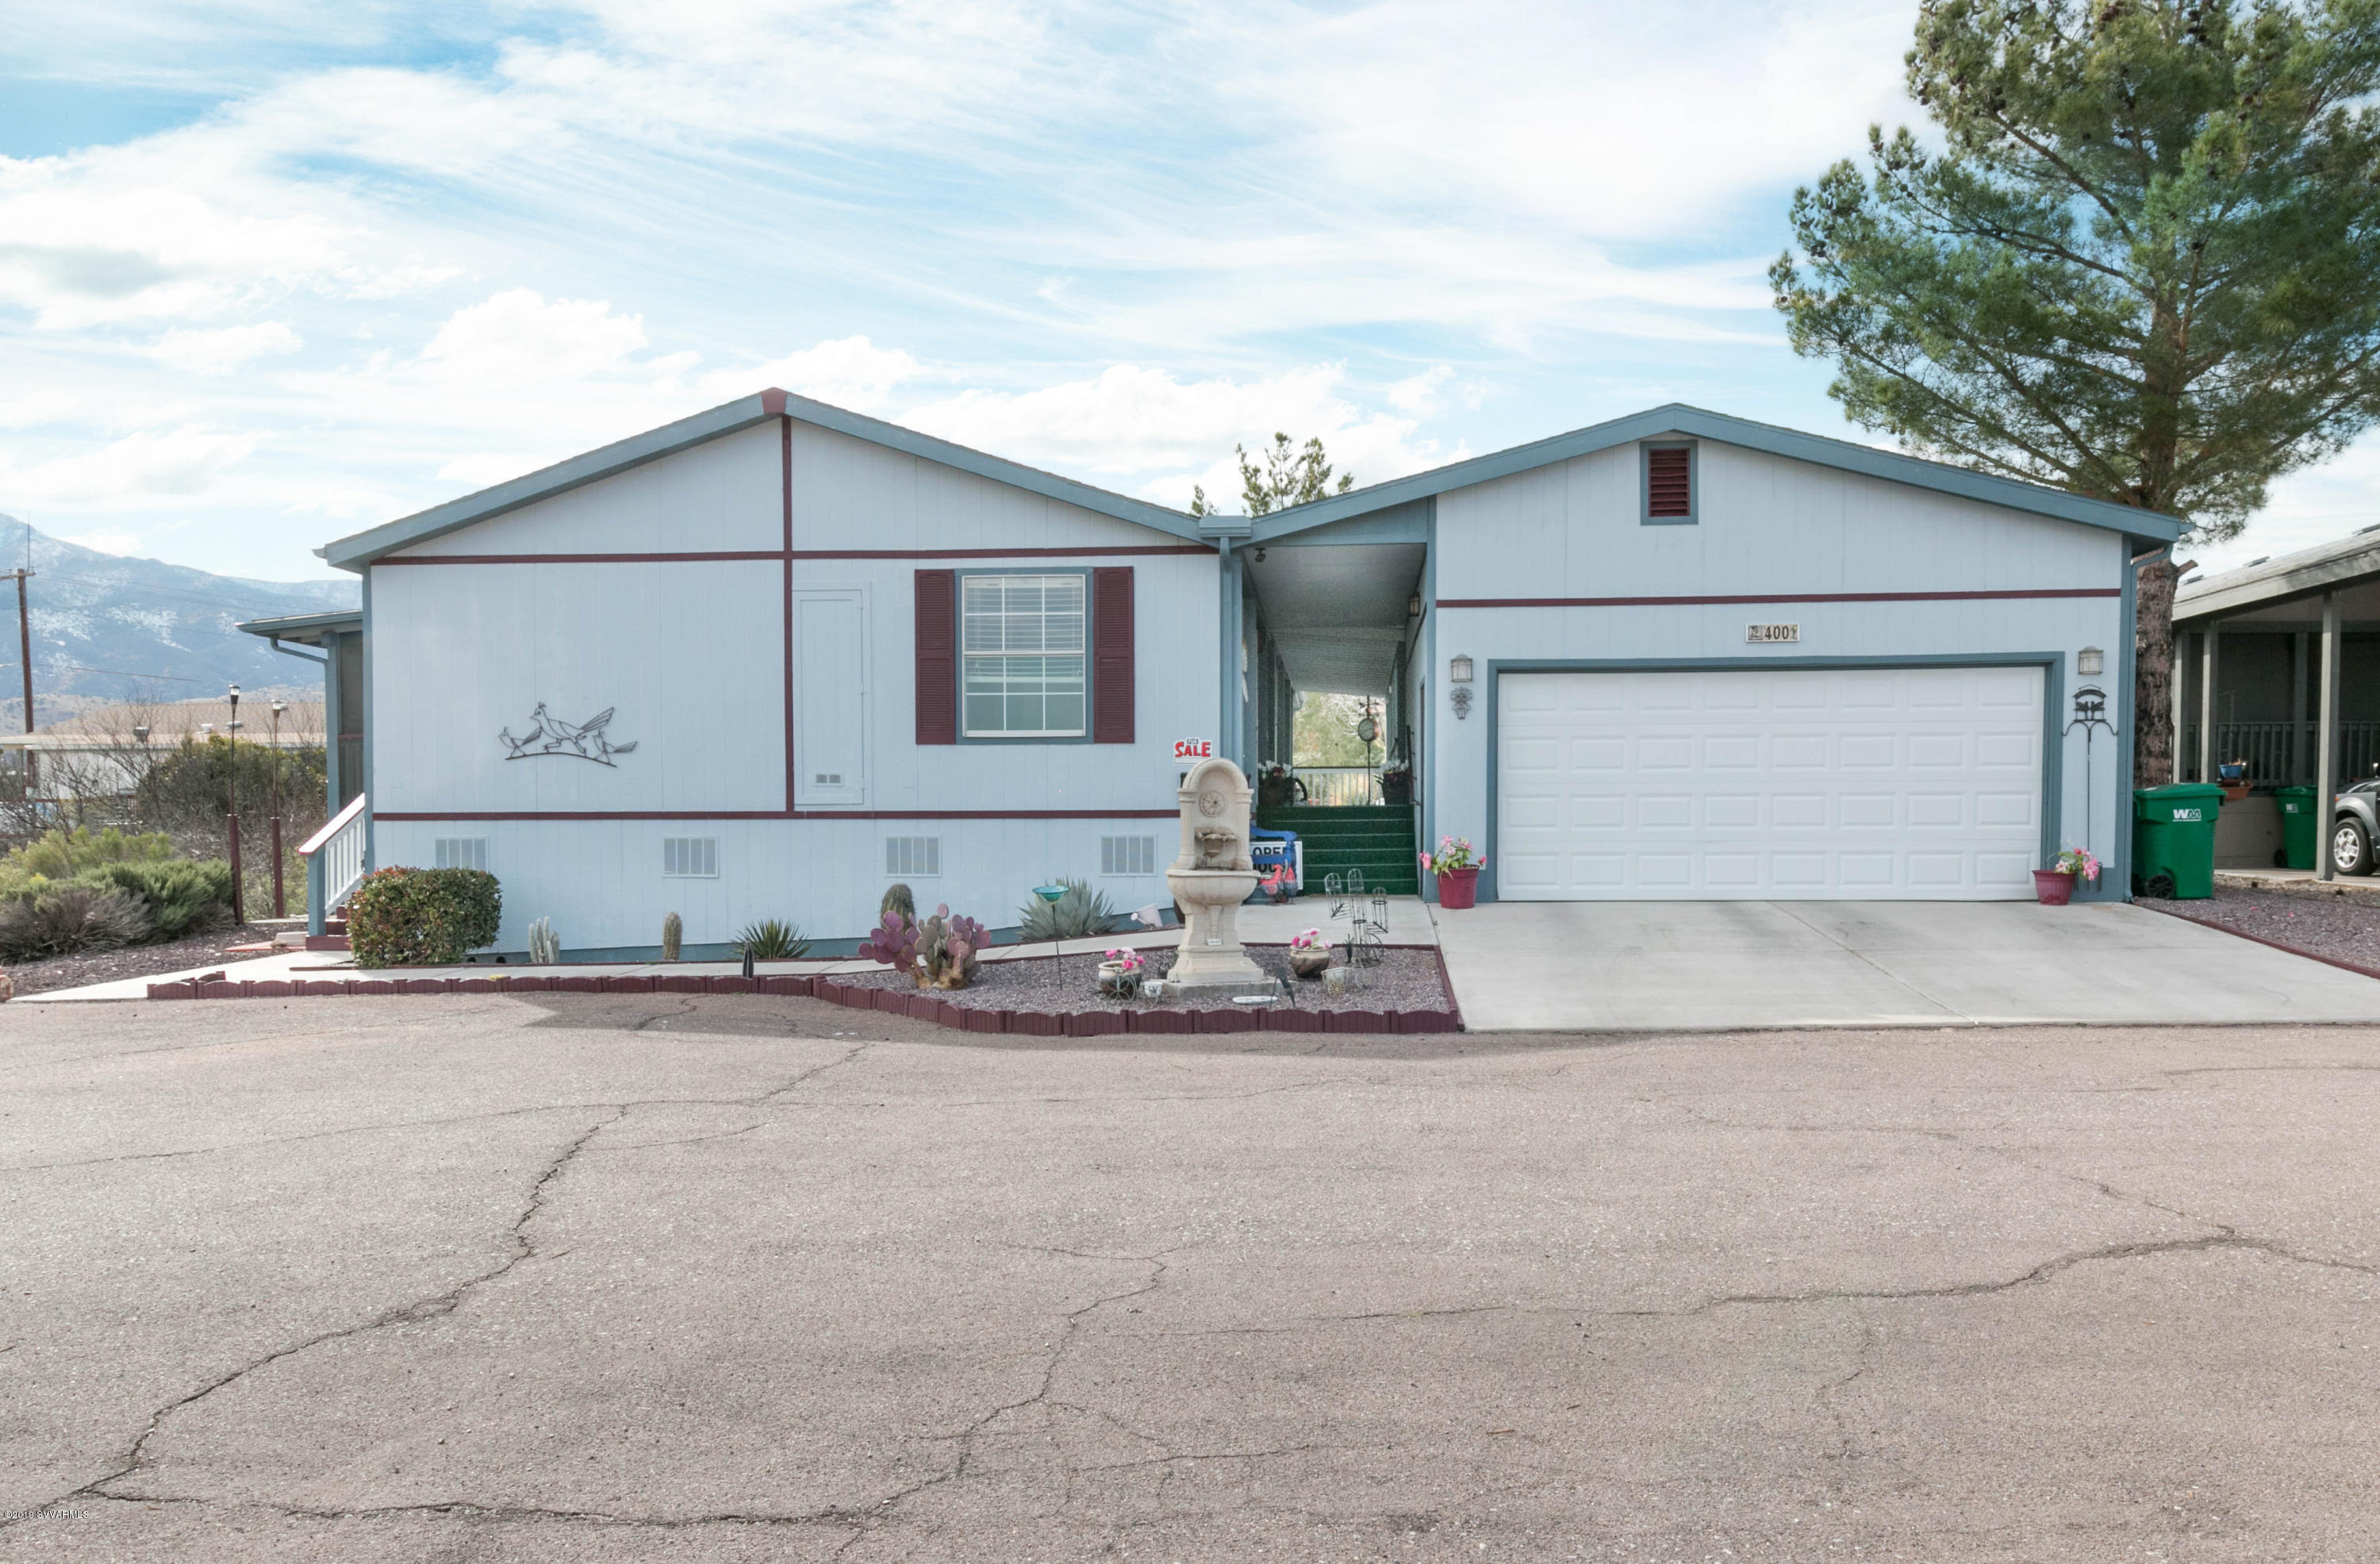 2050 W St Rt 89a #400 Cottonwood, AZ 86326